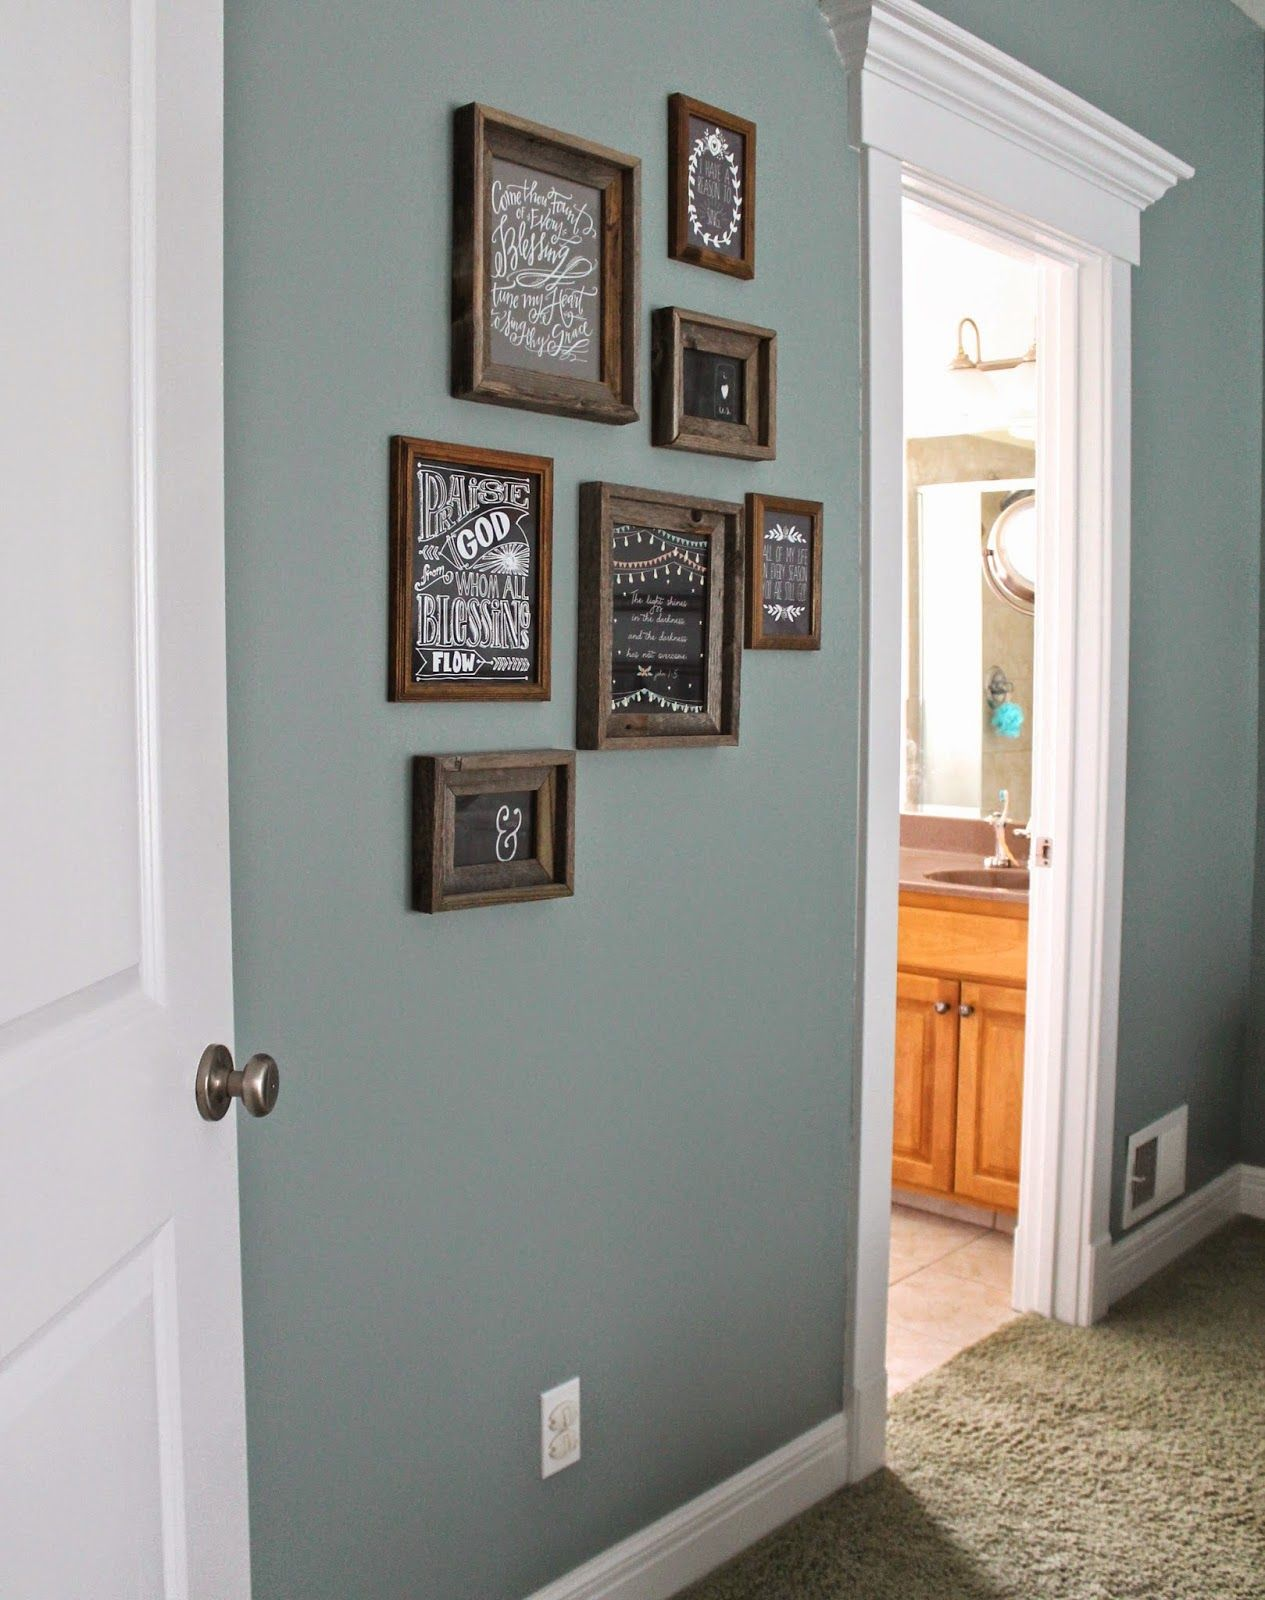 Room color ideas for living room - Paint Color Valspar Blue Arrow Dark Rustic Frames Hobby Lobby Paint Hallway Ideasliving Room